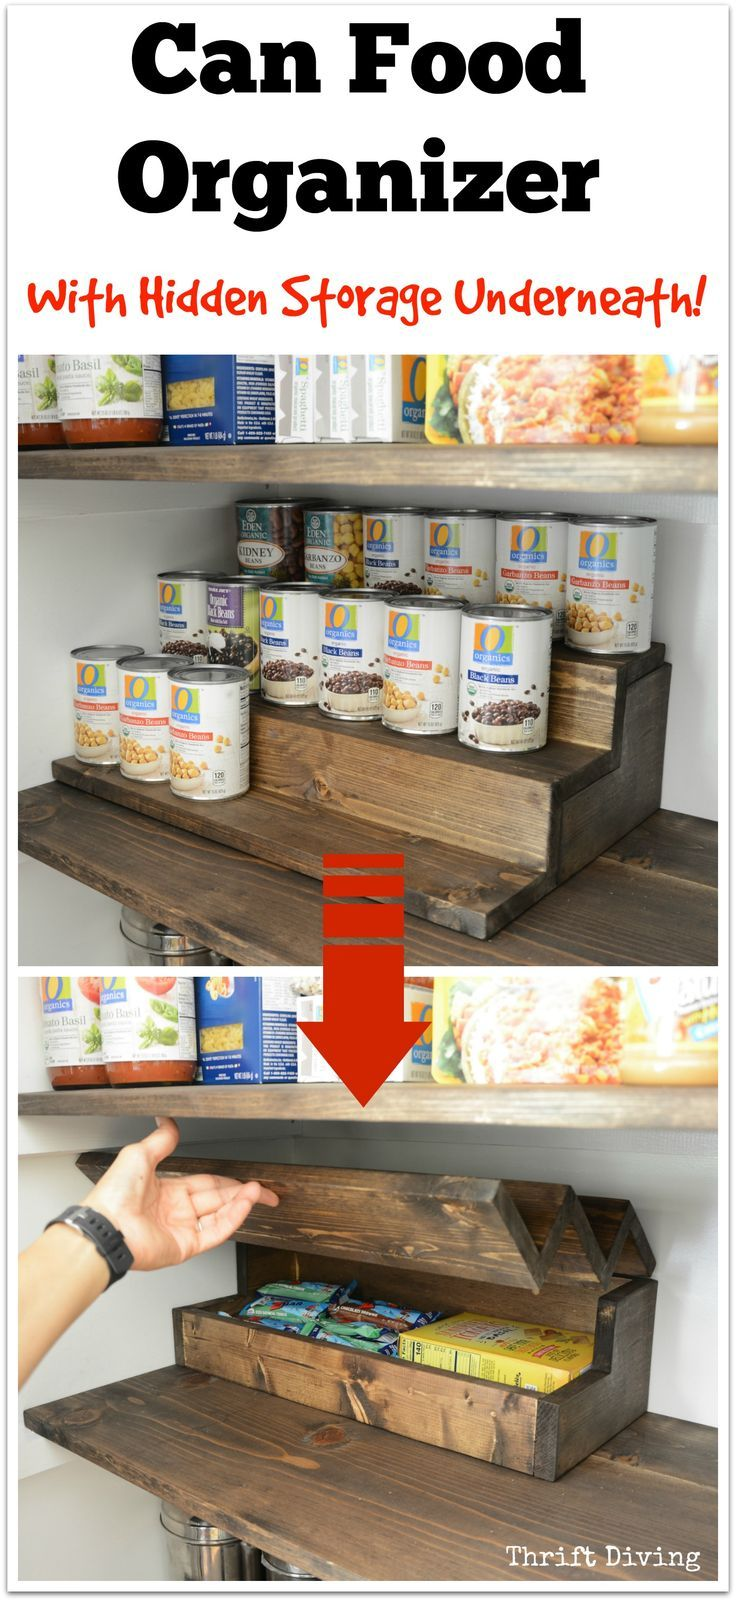 Can Food Organizer with Hidden Storage Underneath - Hide treats and snacks from your kids! - Thrift Diving Blog